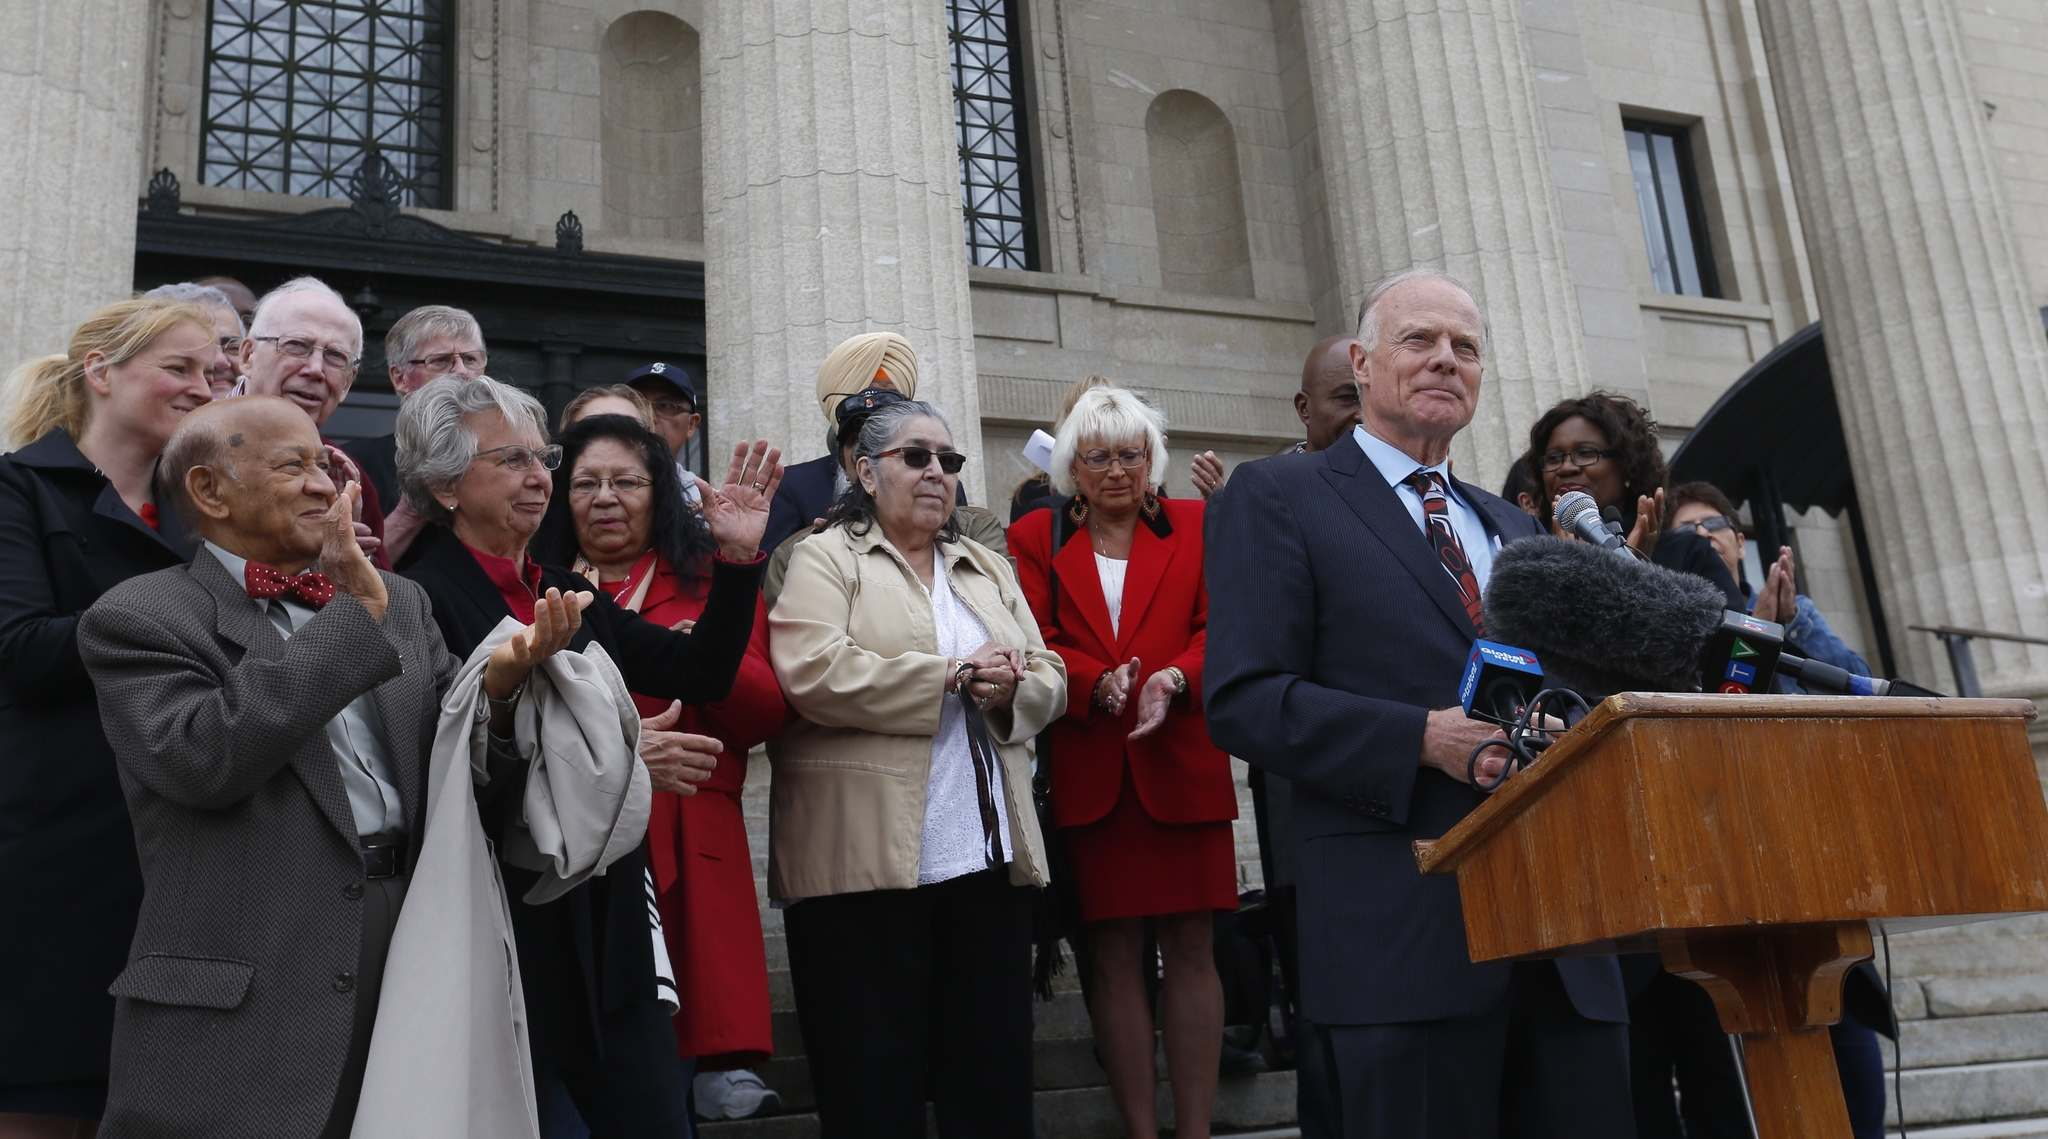 WAYNE GLOWACKI / WINNIPEG FREE PRESS</p><p>At podium, MLA Jon Gerrard with family and supporters announced Friday he is running for the Manitoba Liberal party leadership.</p>